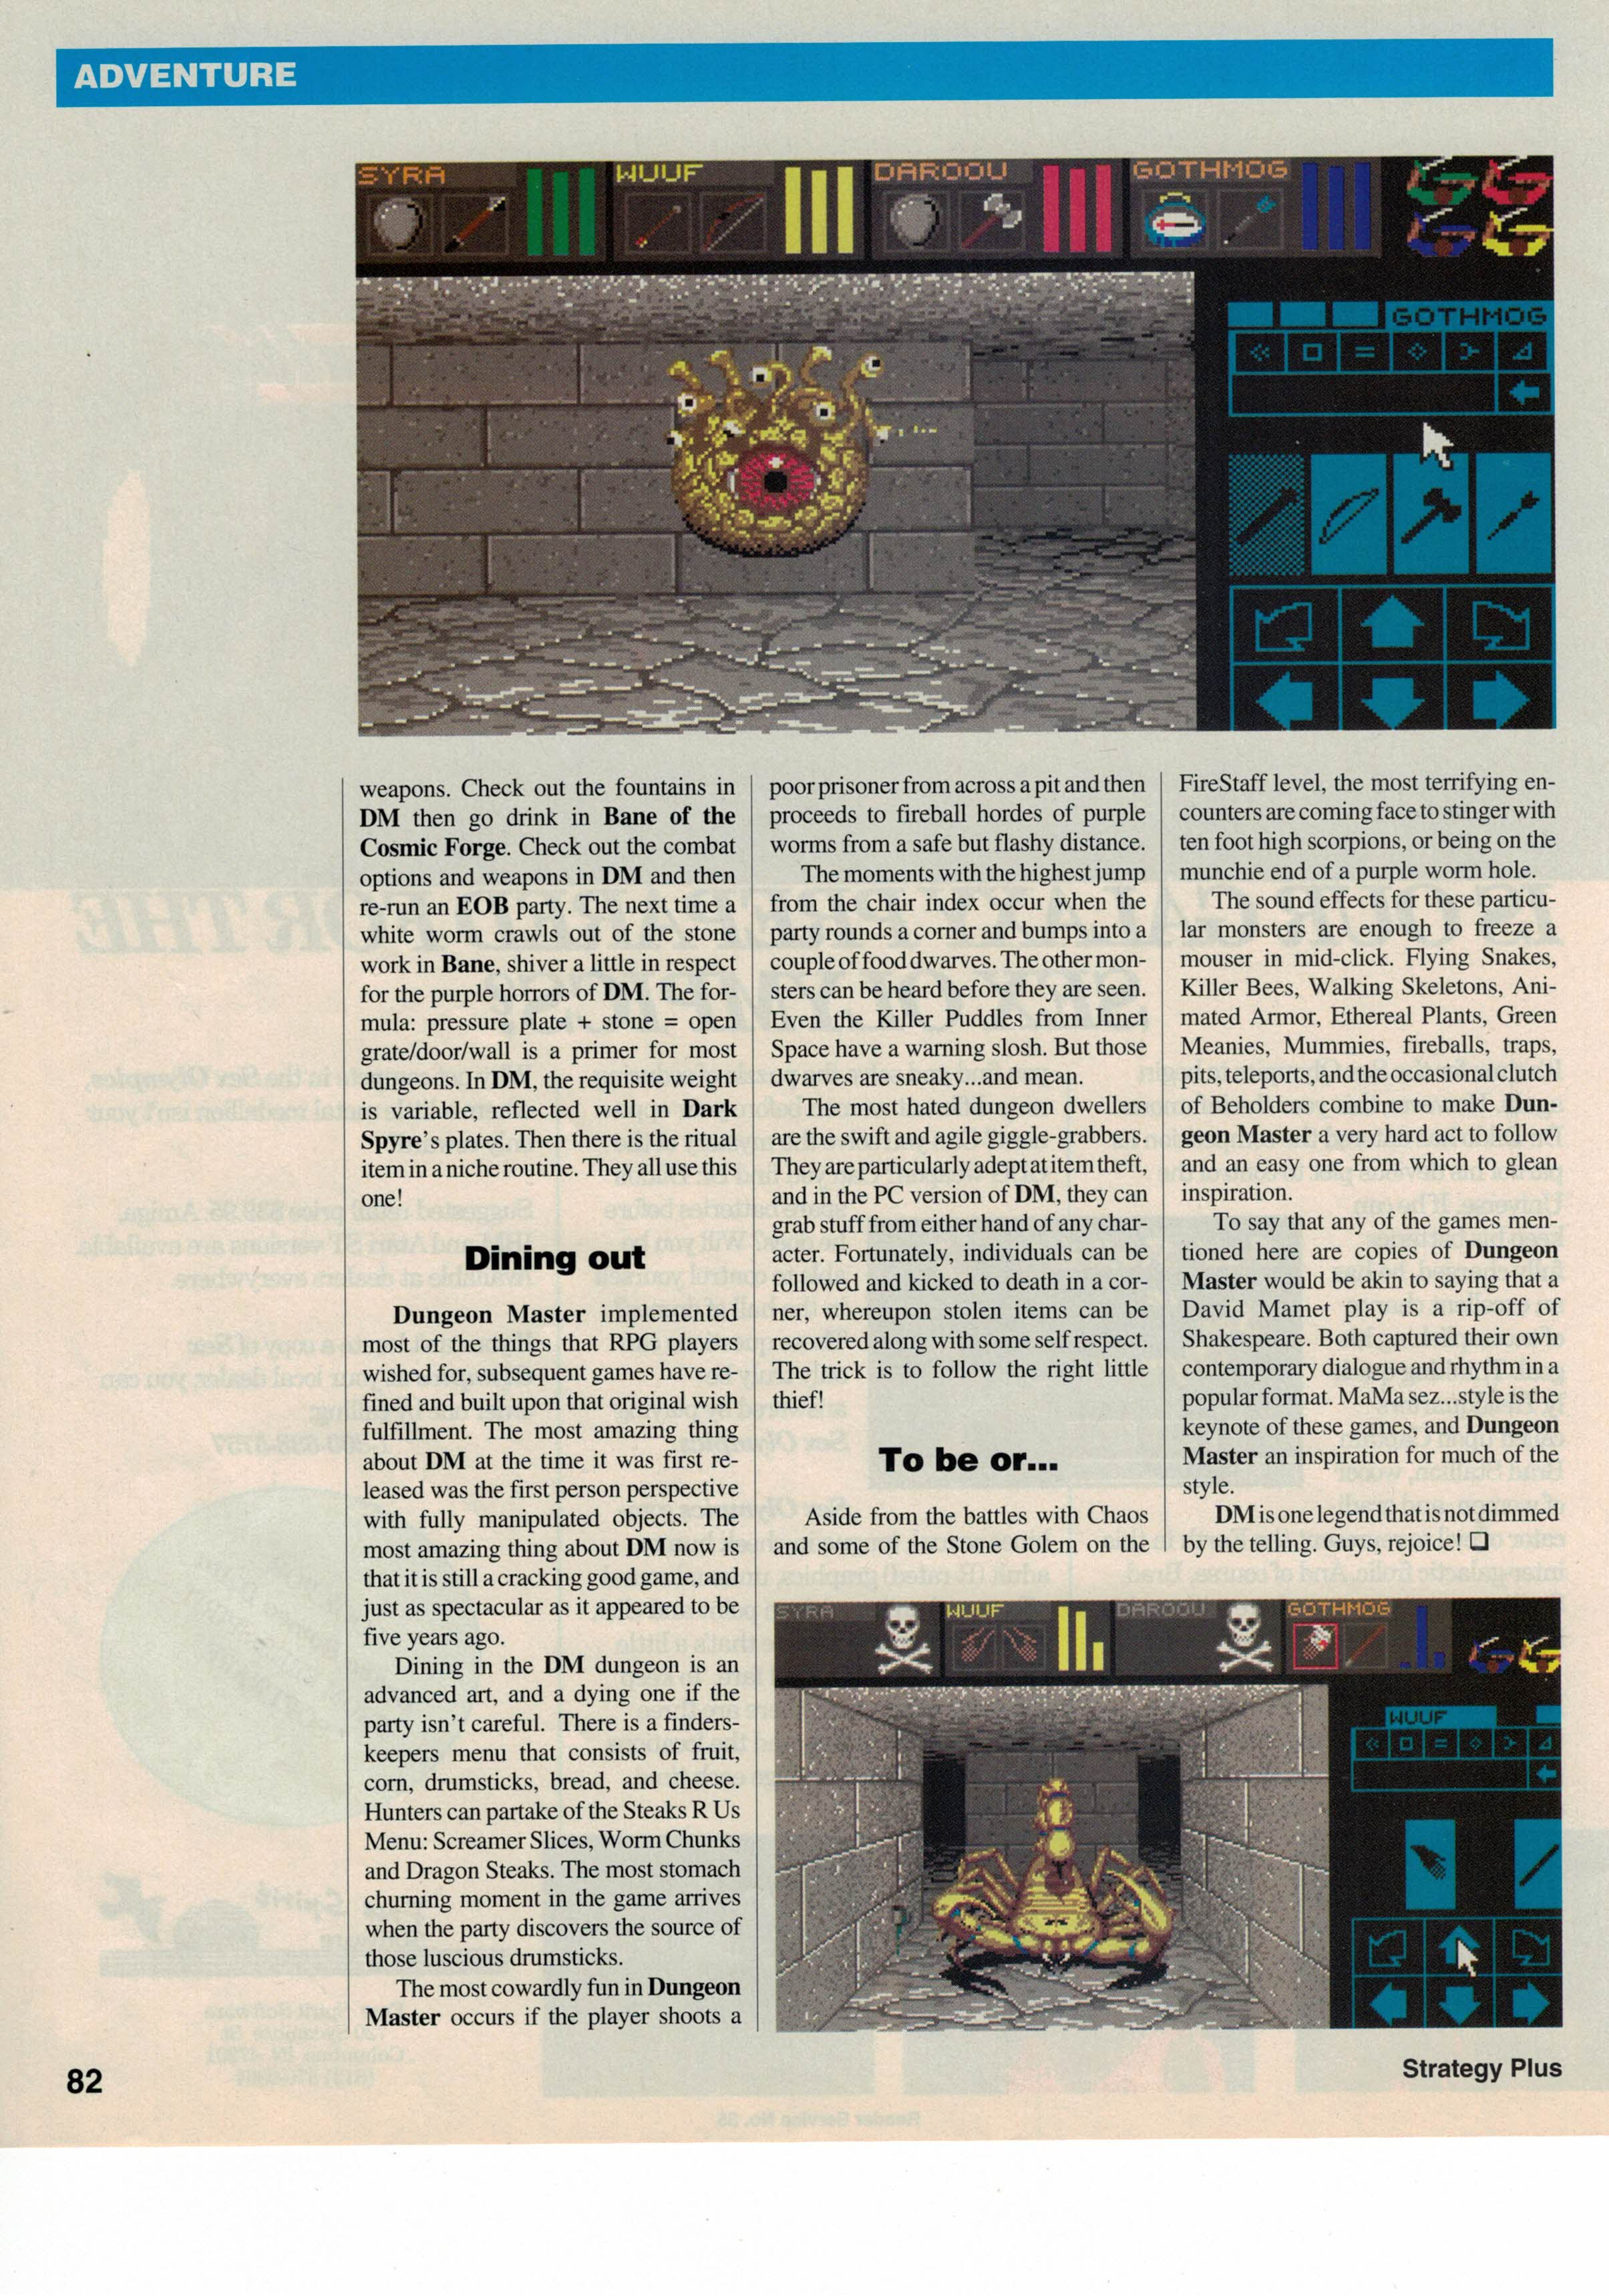 Dungeon Master for PC Review published in British-American-Canadian magazine 'Computer Games Strategy Plus', Issue #24 November 1992, Page 82